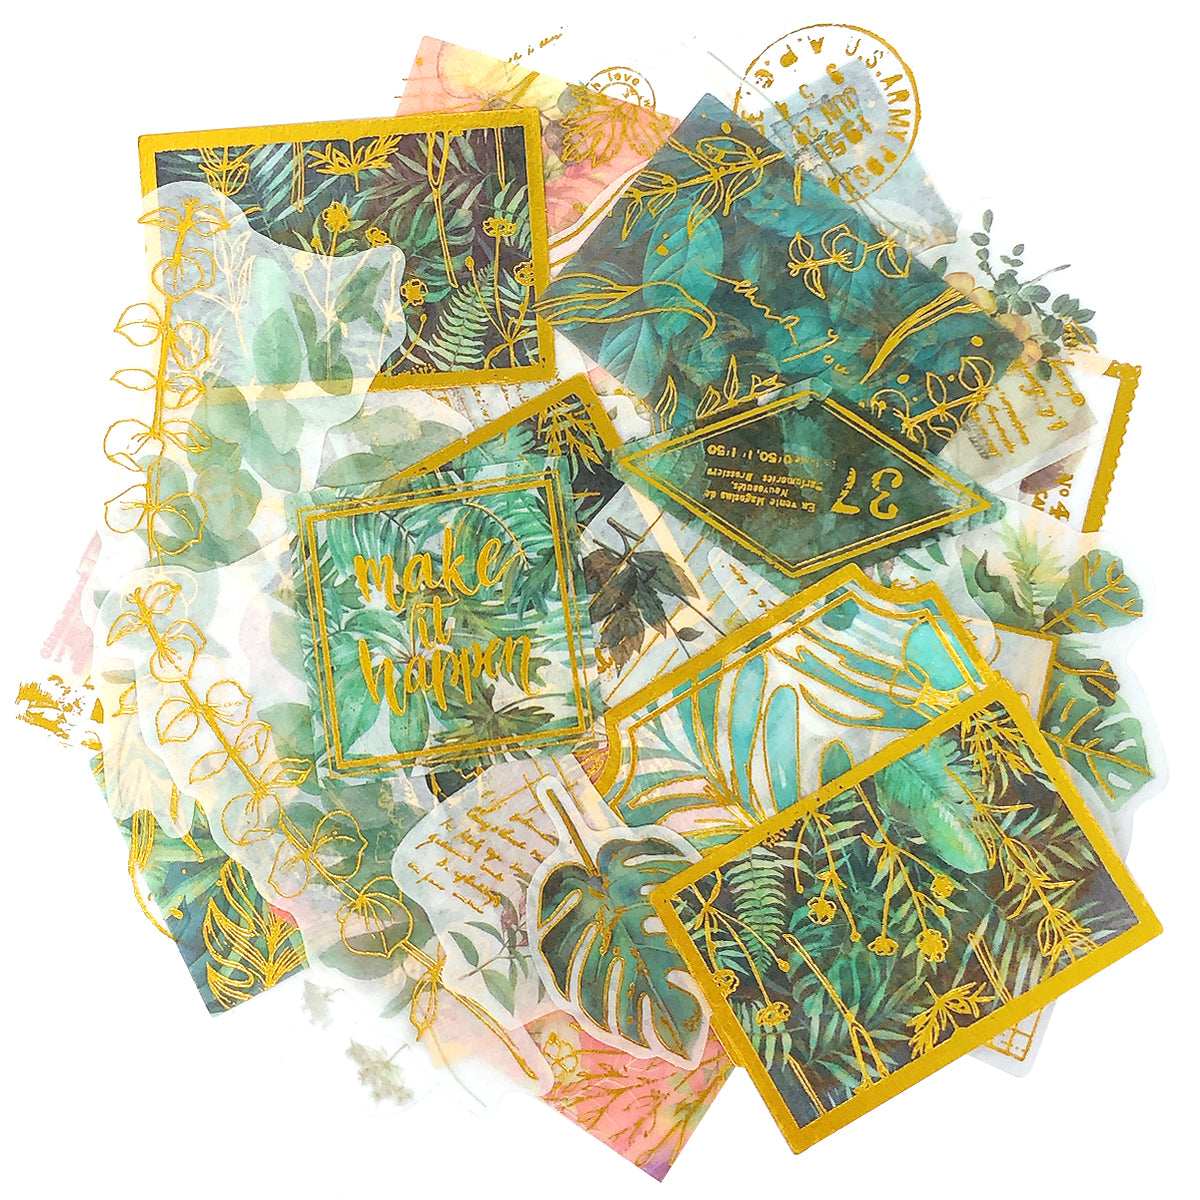 Wrapables Decorative Scrapbooking Washi Stickers, DIY Crafts for Stationery, Diary, Card Making (60 pcs)